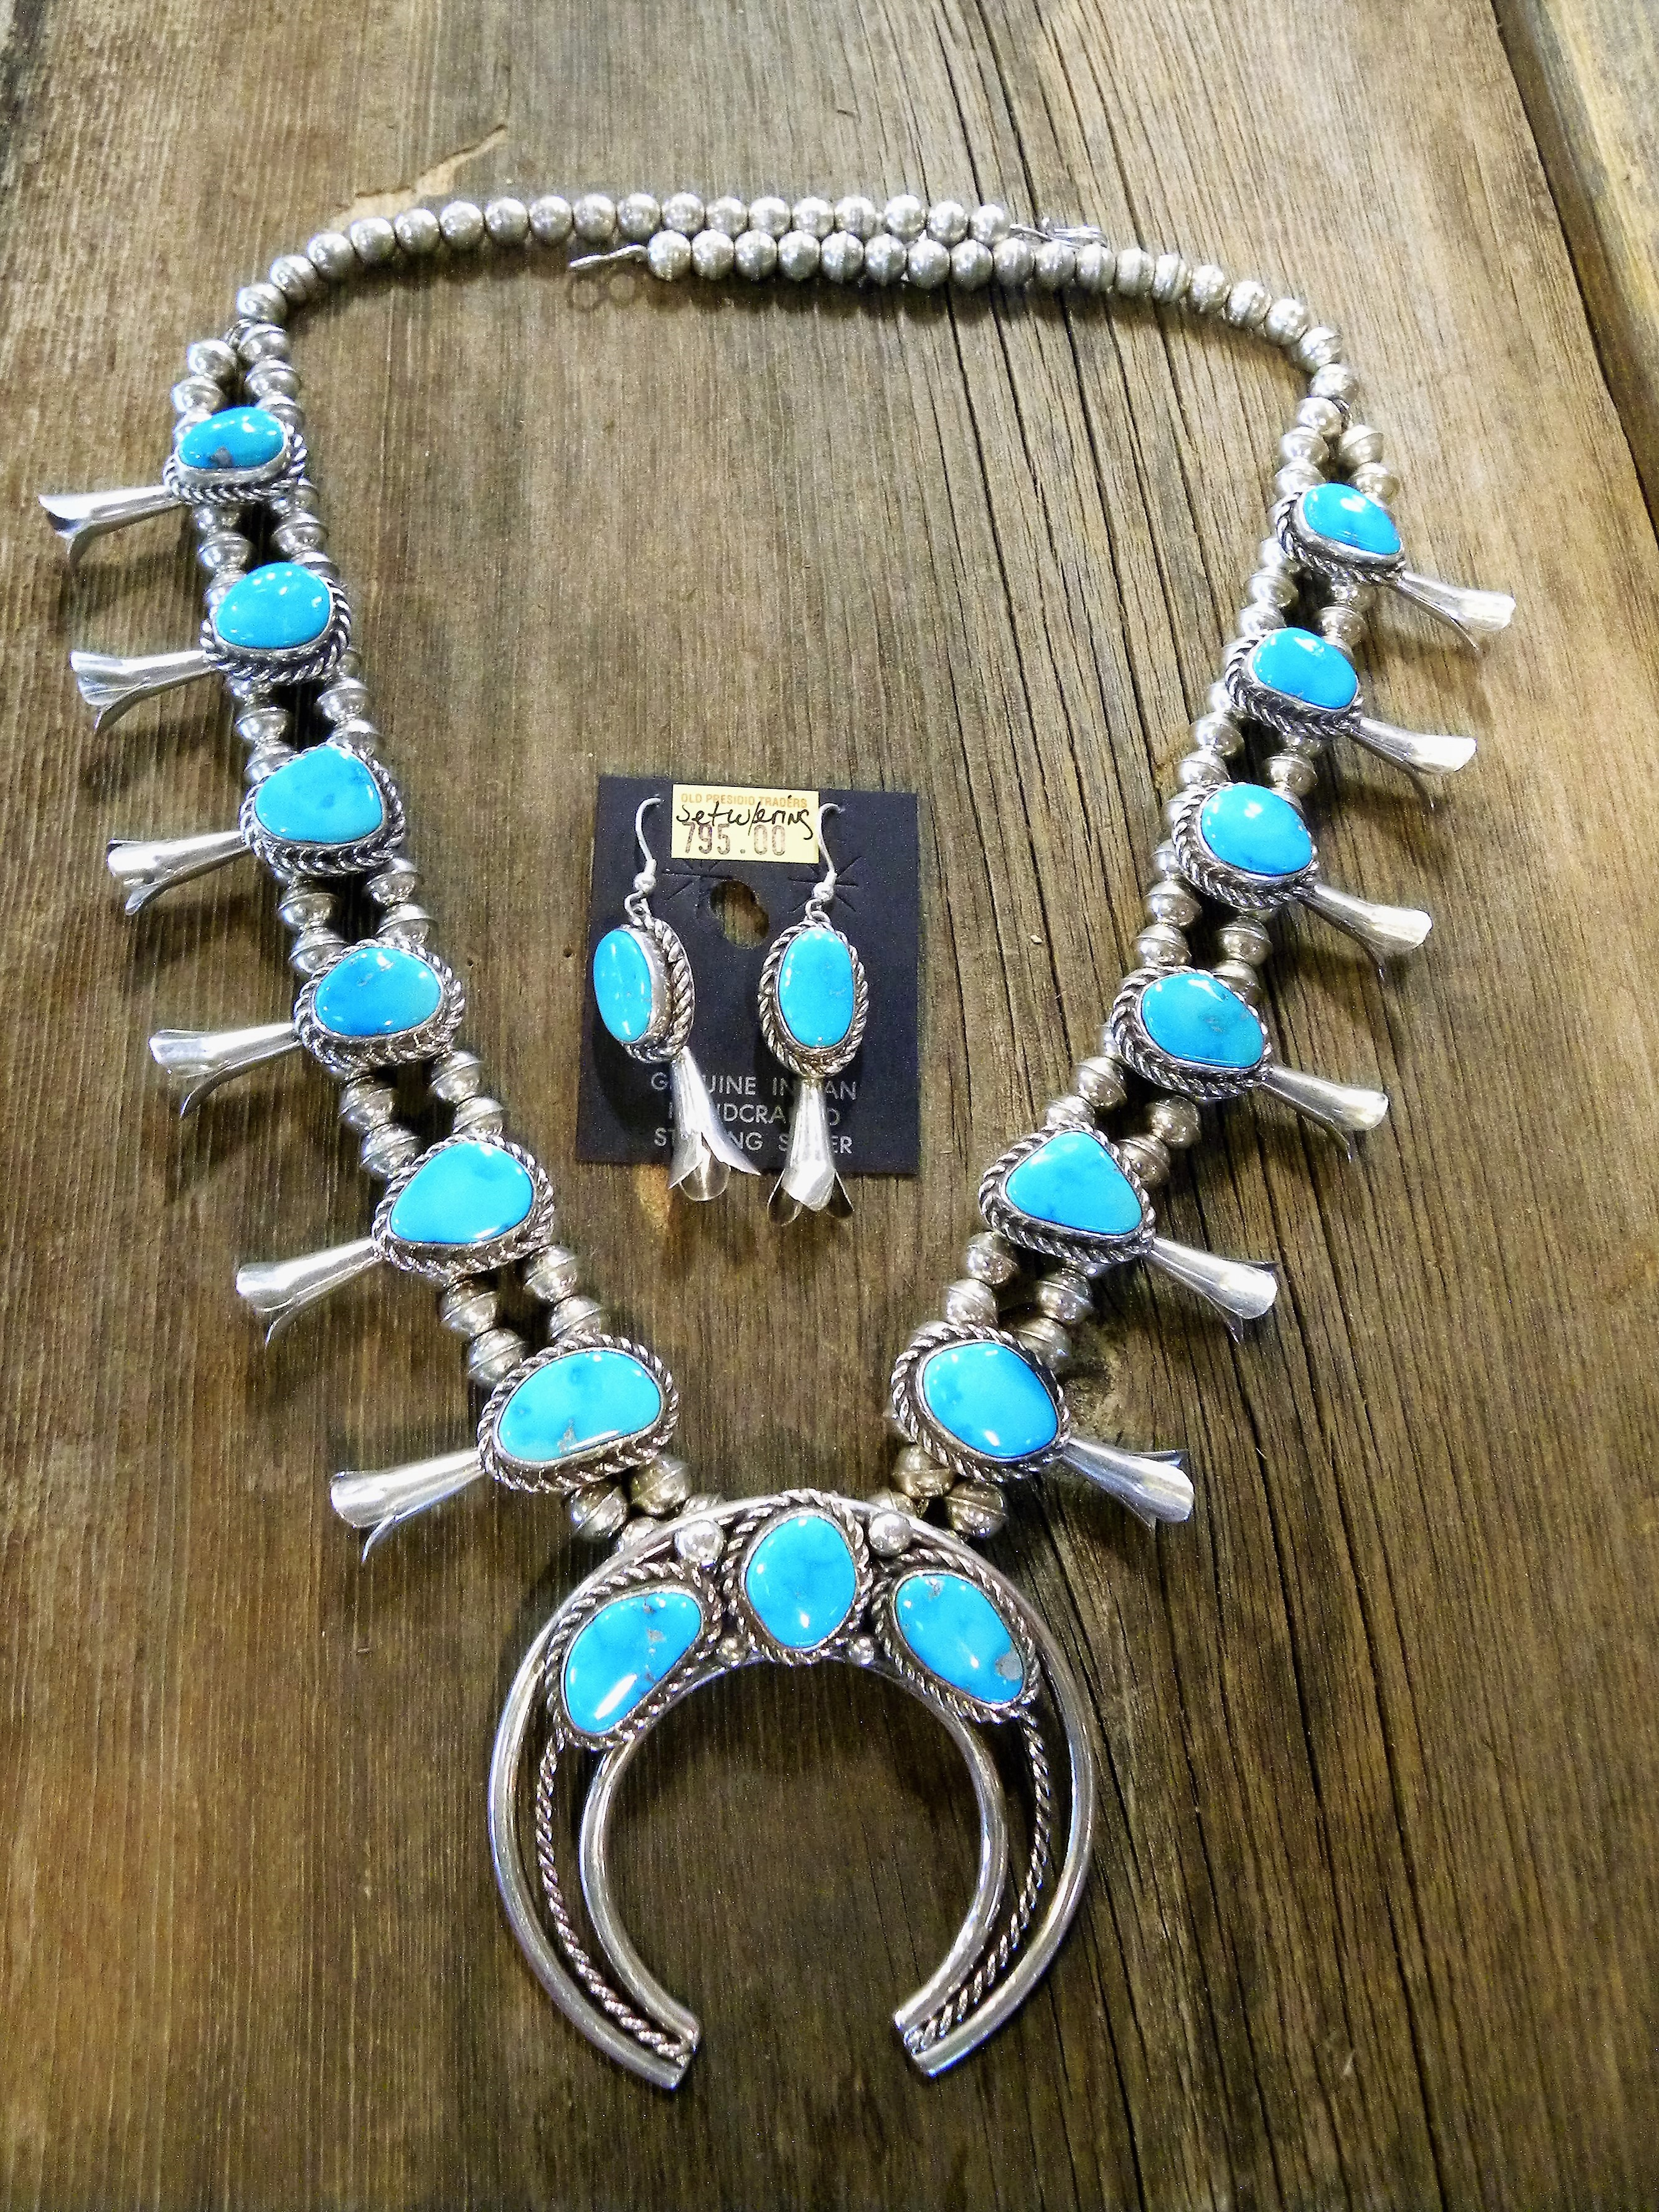 SBN16 Pawn Turquoise Squash Blossom Necklace with matching earrings